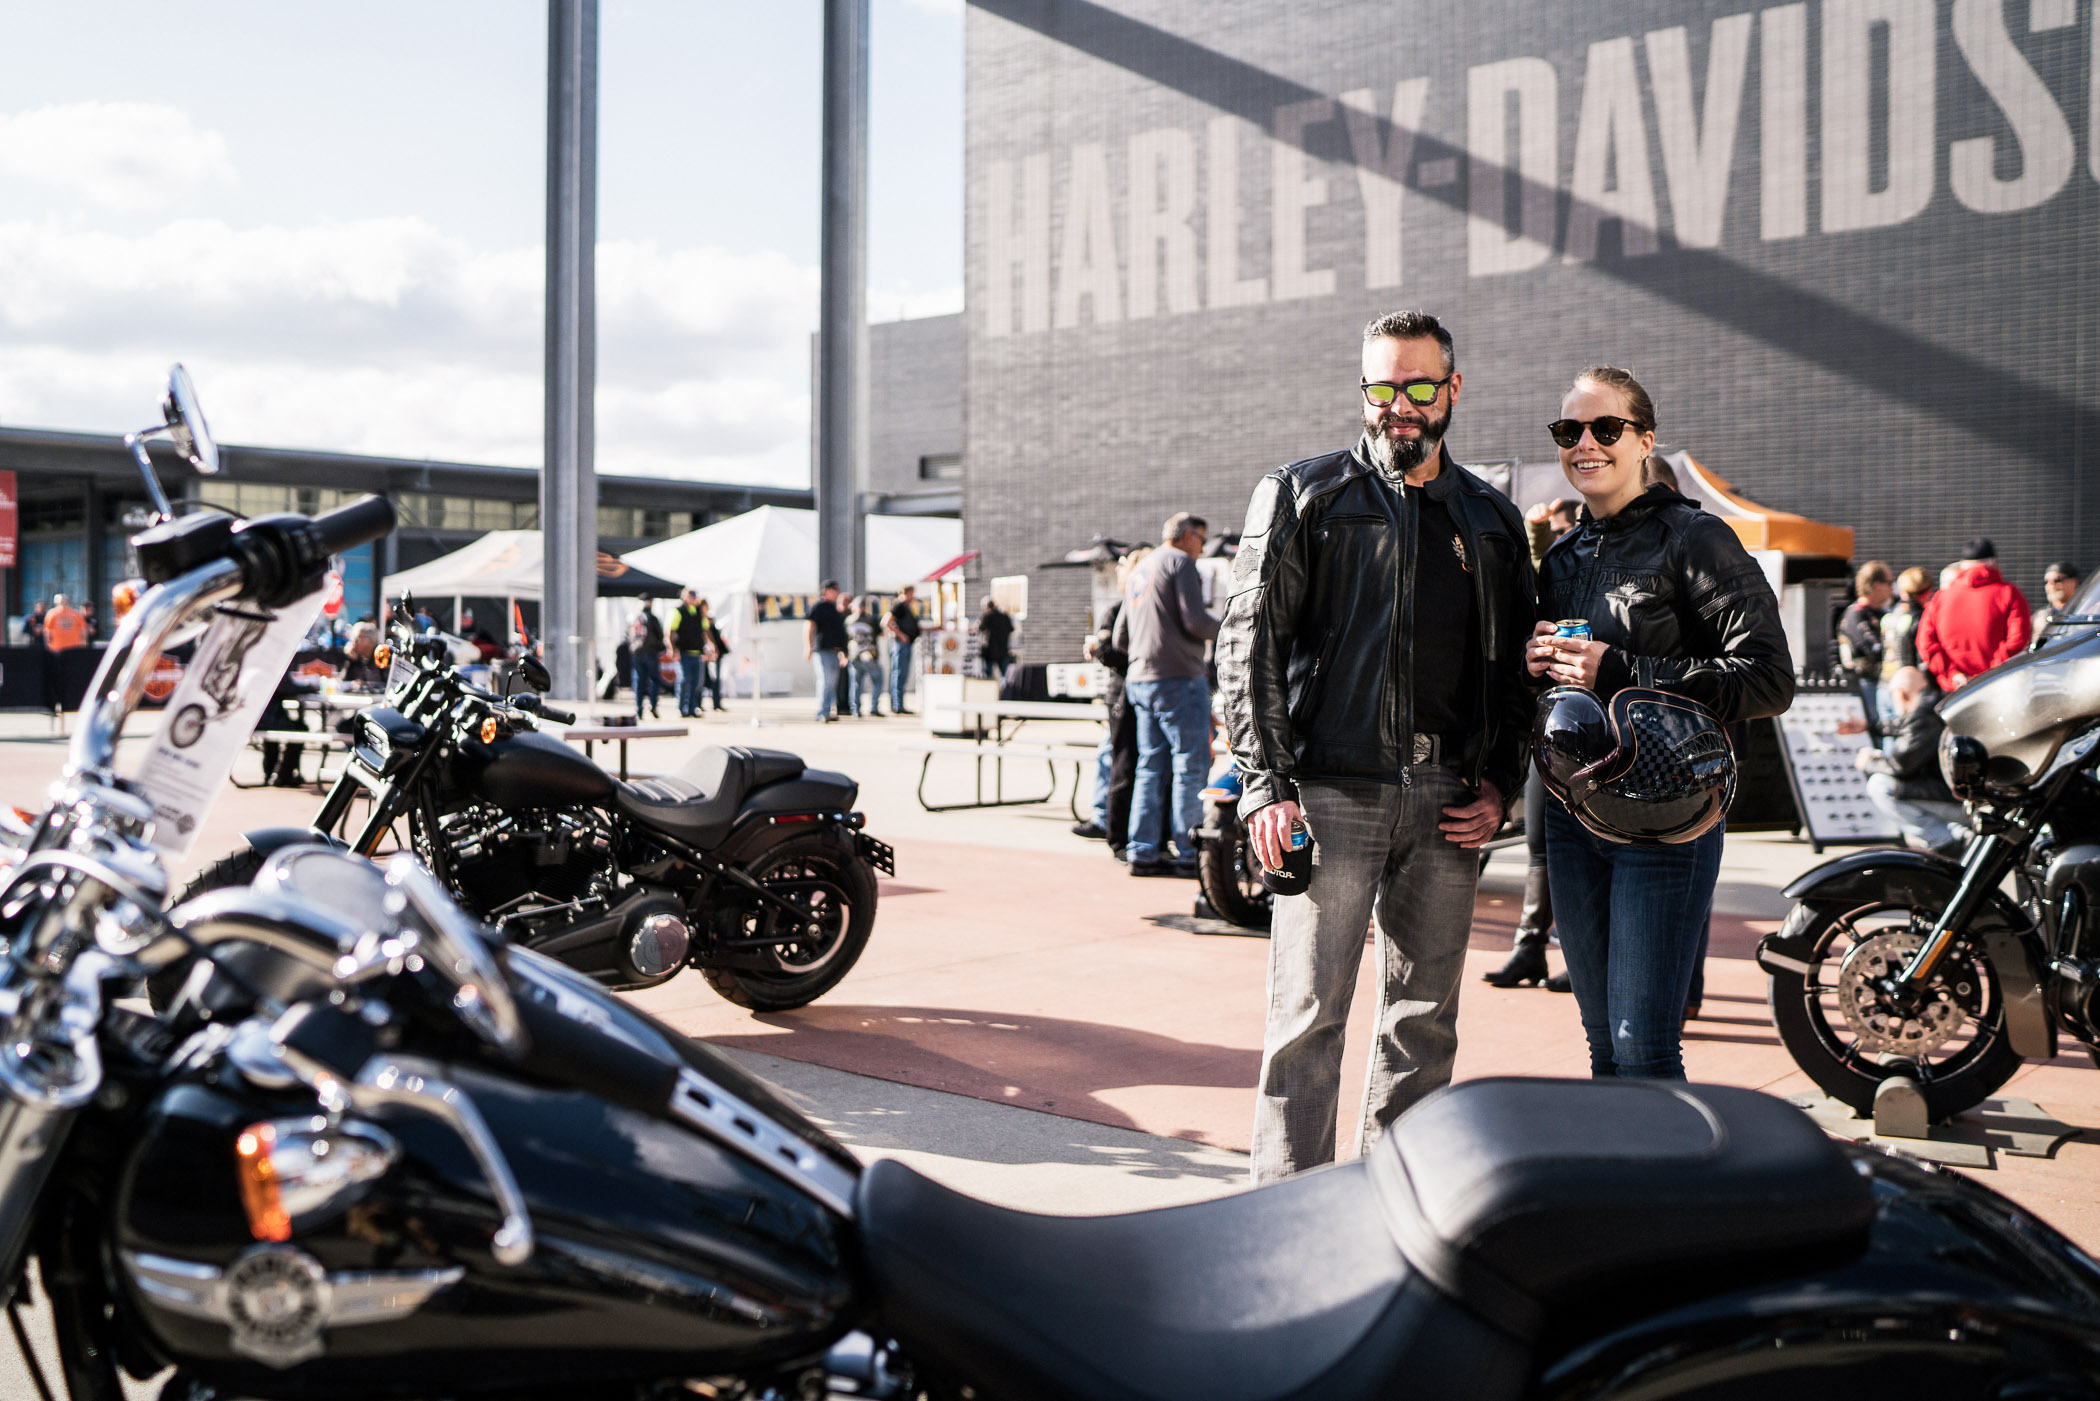 KS_17071_HarleyRally_163.jpg